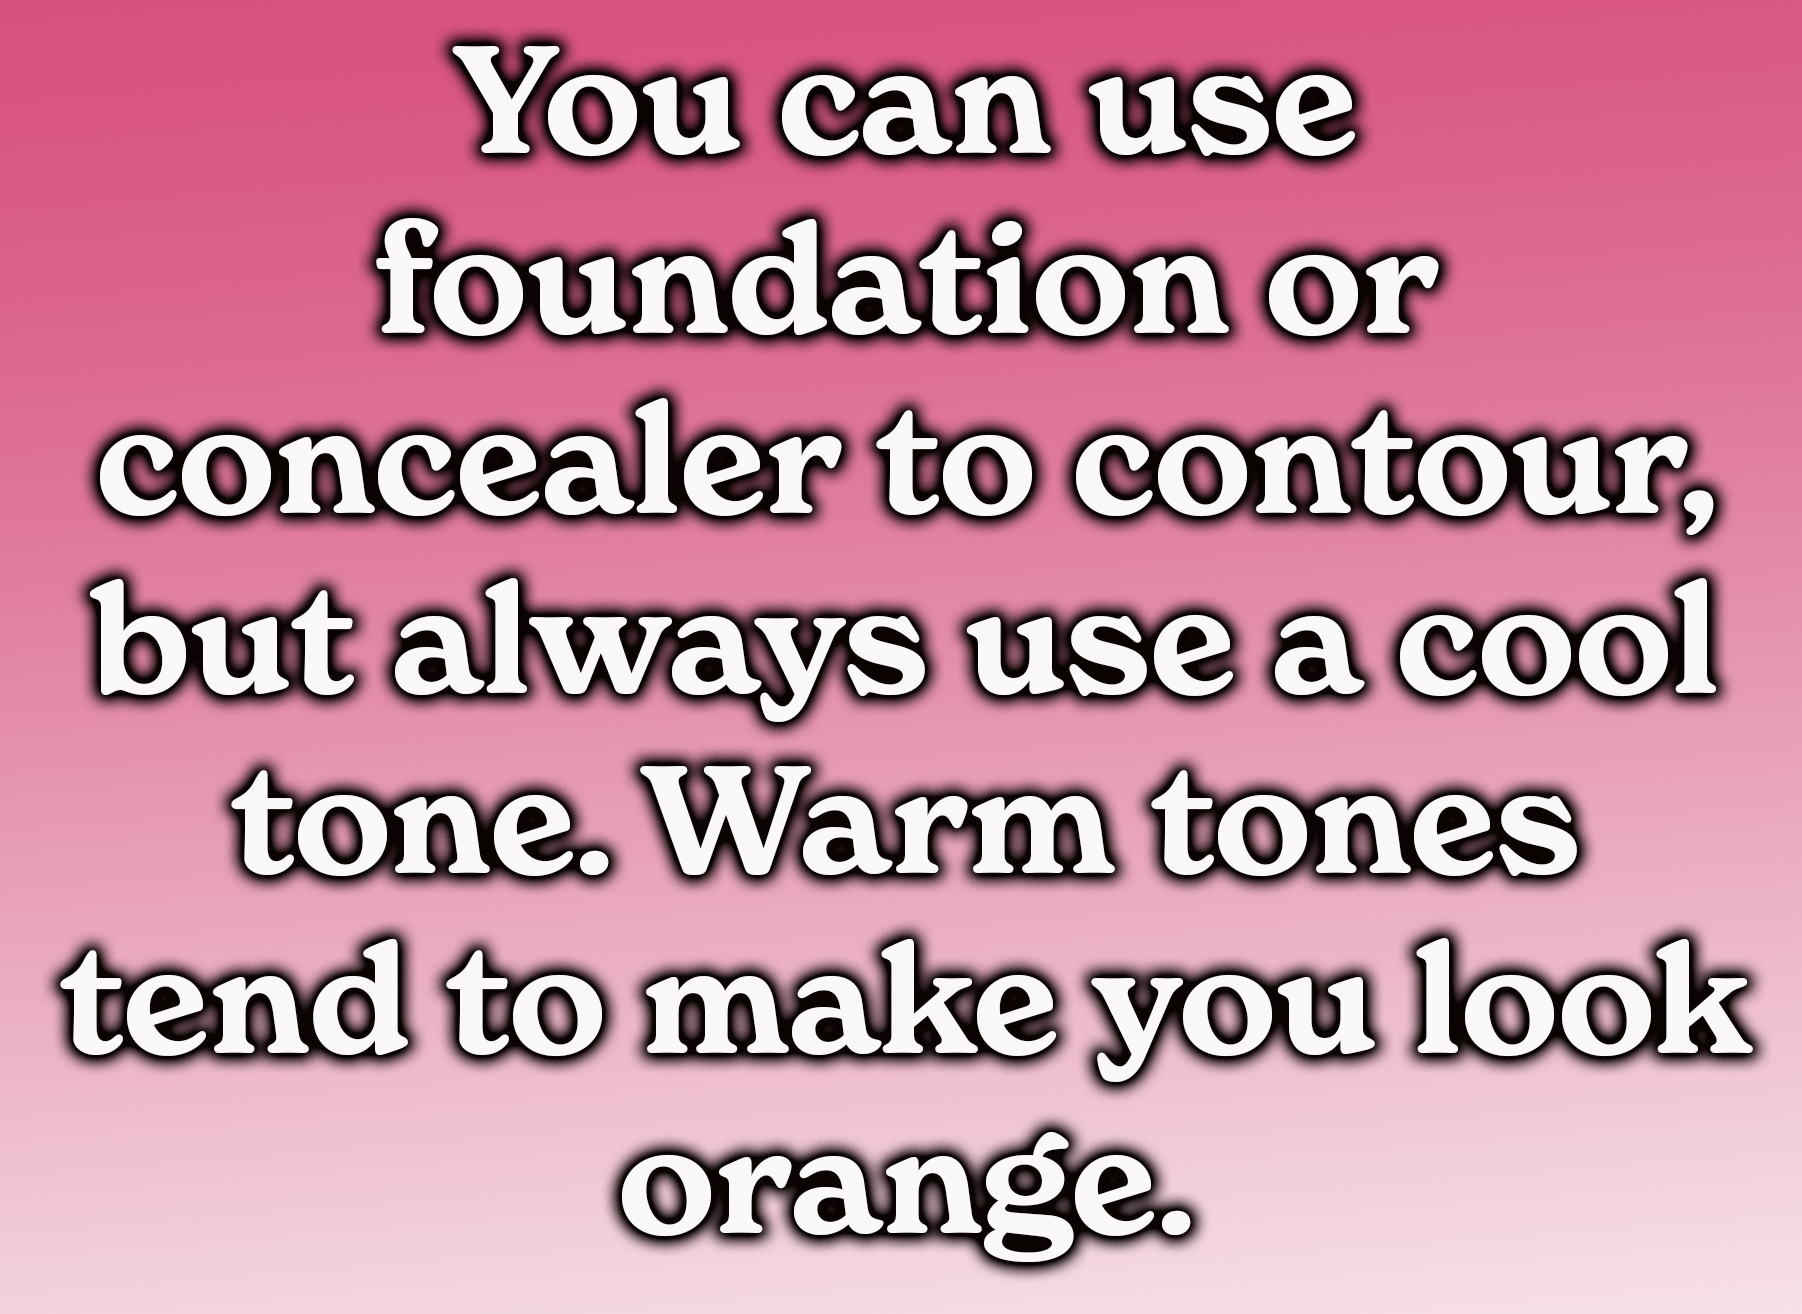 You can use foundation or concealer to contour, but always contour using a cool tone